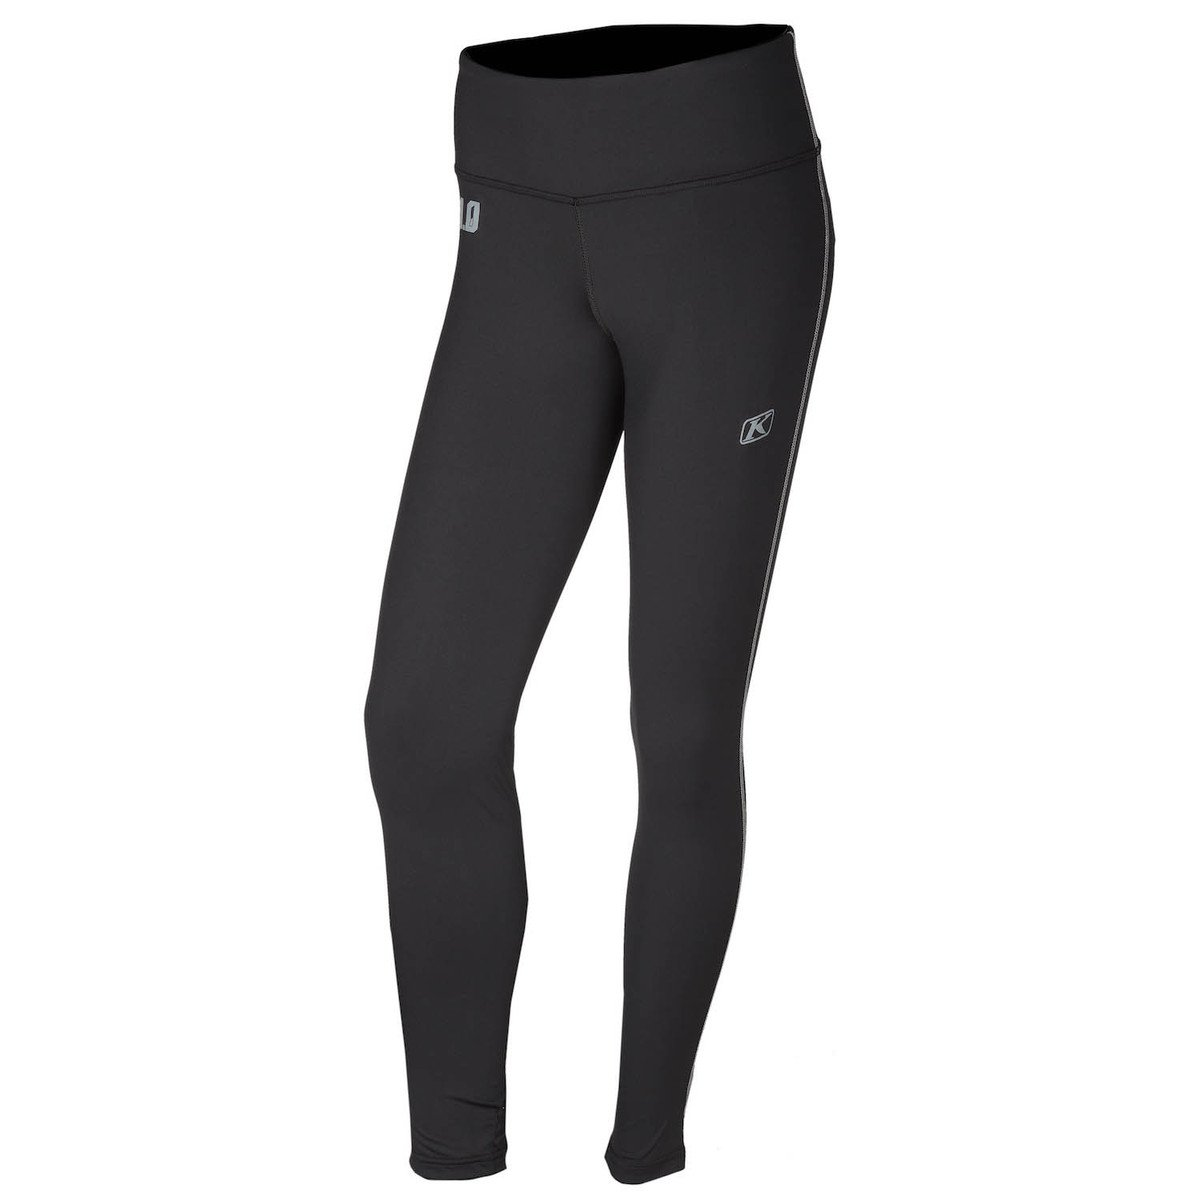 Klim Solstice Pant 1.0 - Black/Medium by Klim